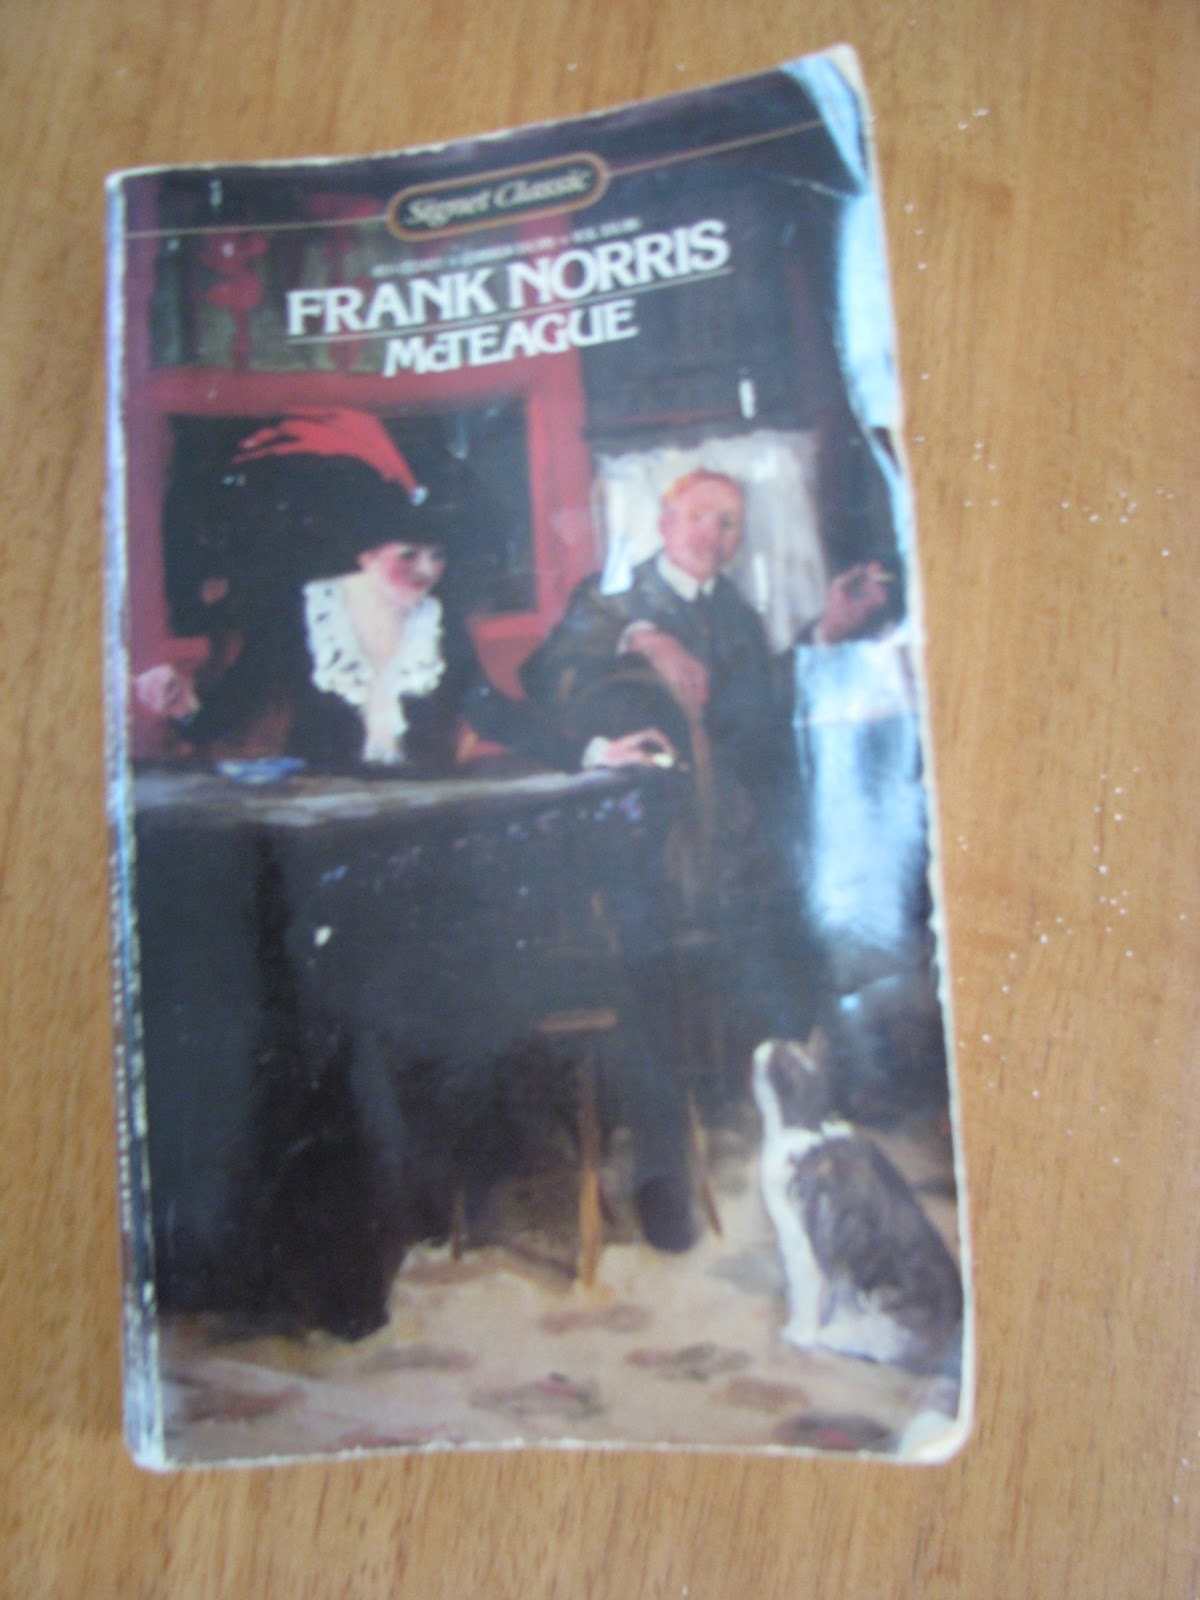 an analysis of the novel mcteague by frank norris